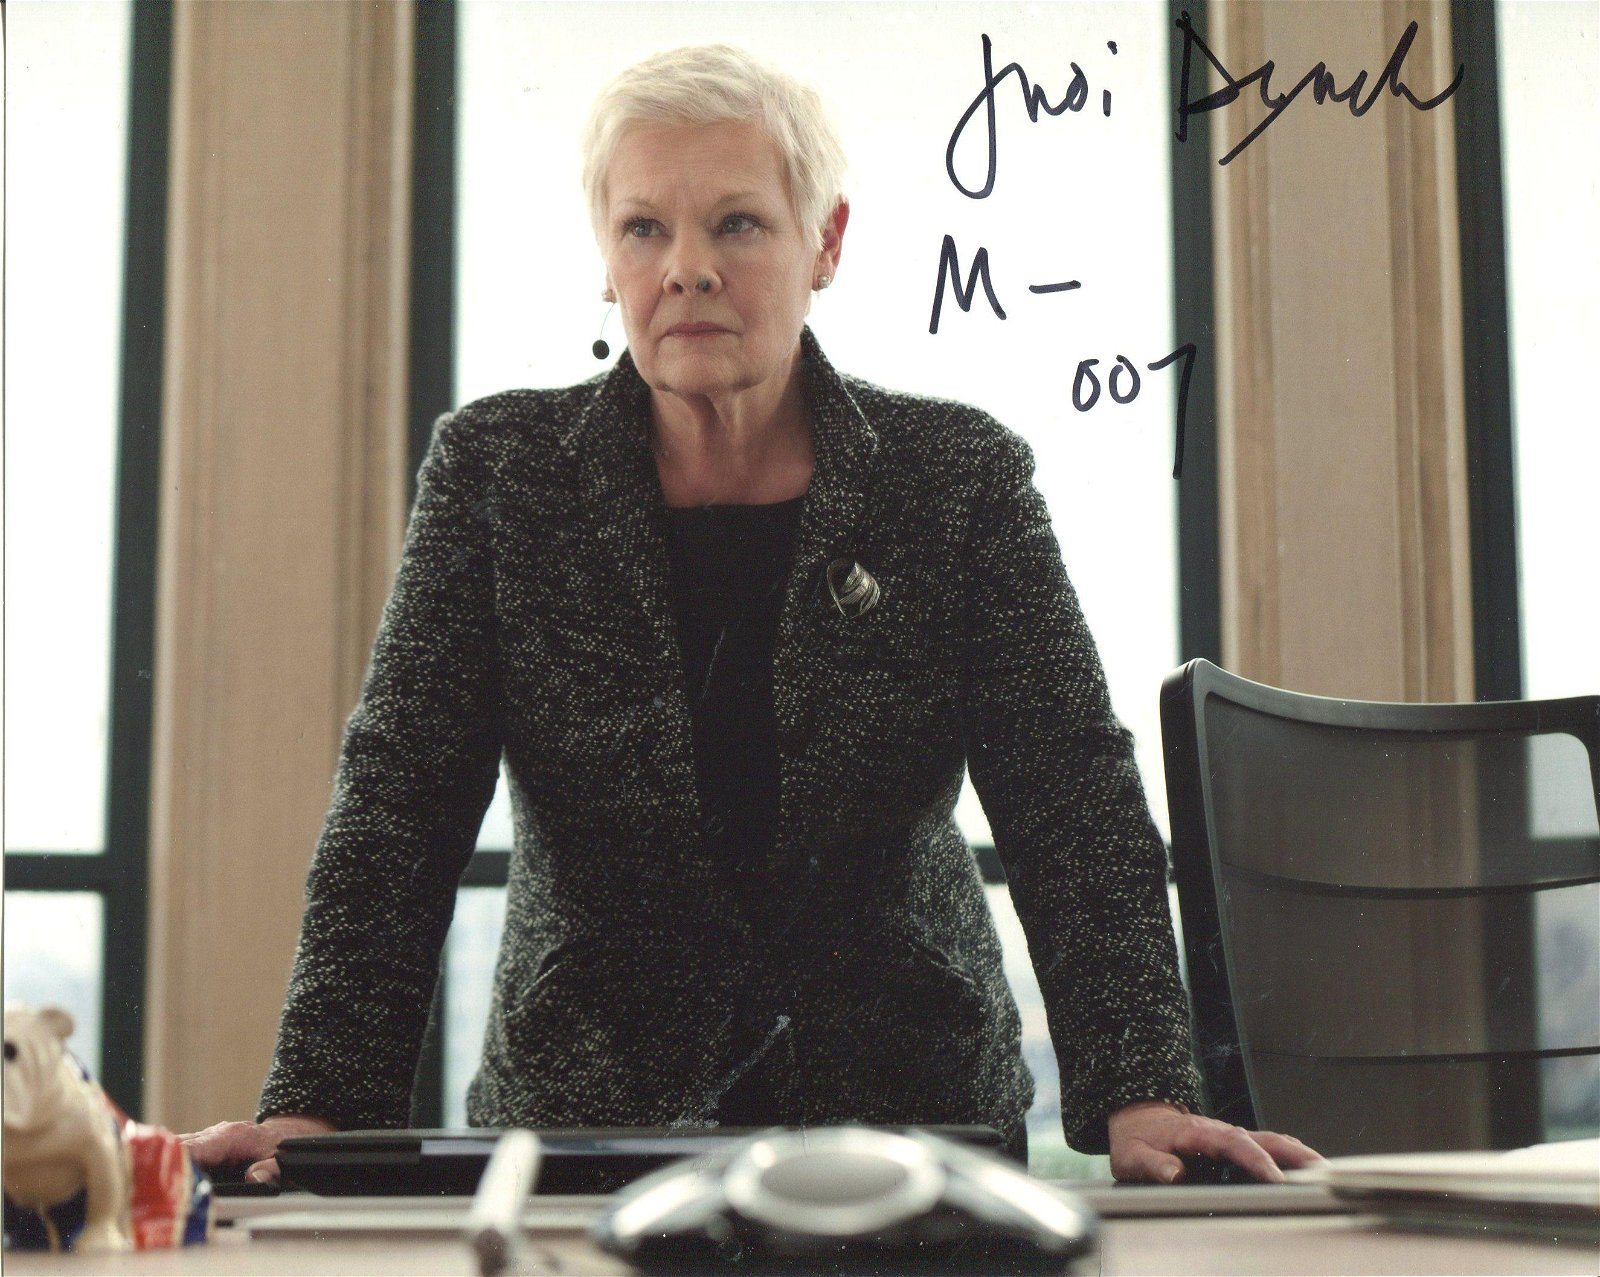 007 James Bond. 8x10 photo signed by Dame Judi Dench as